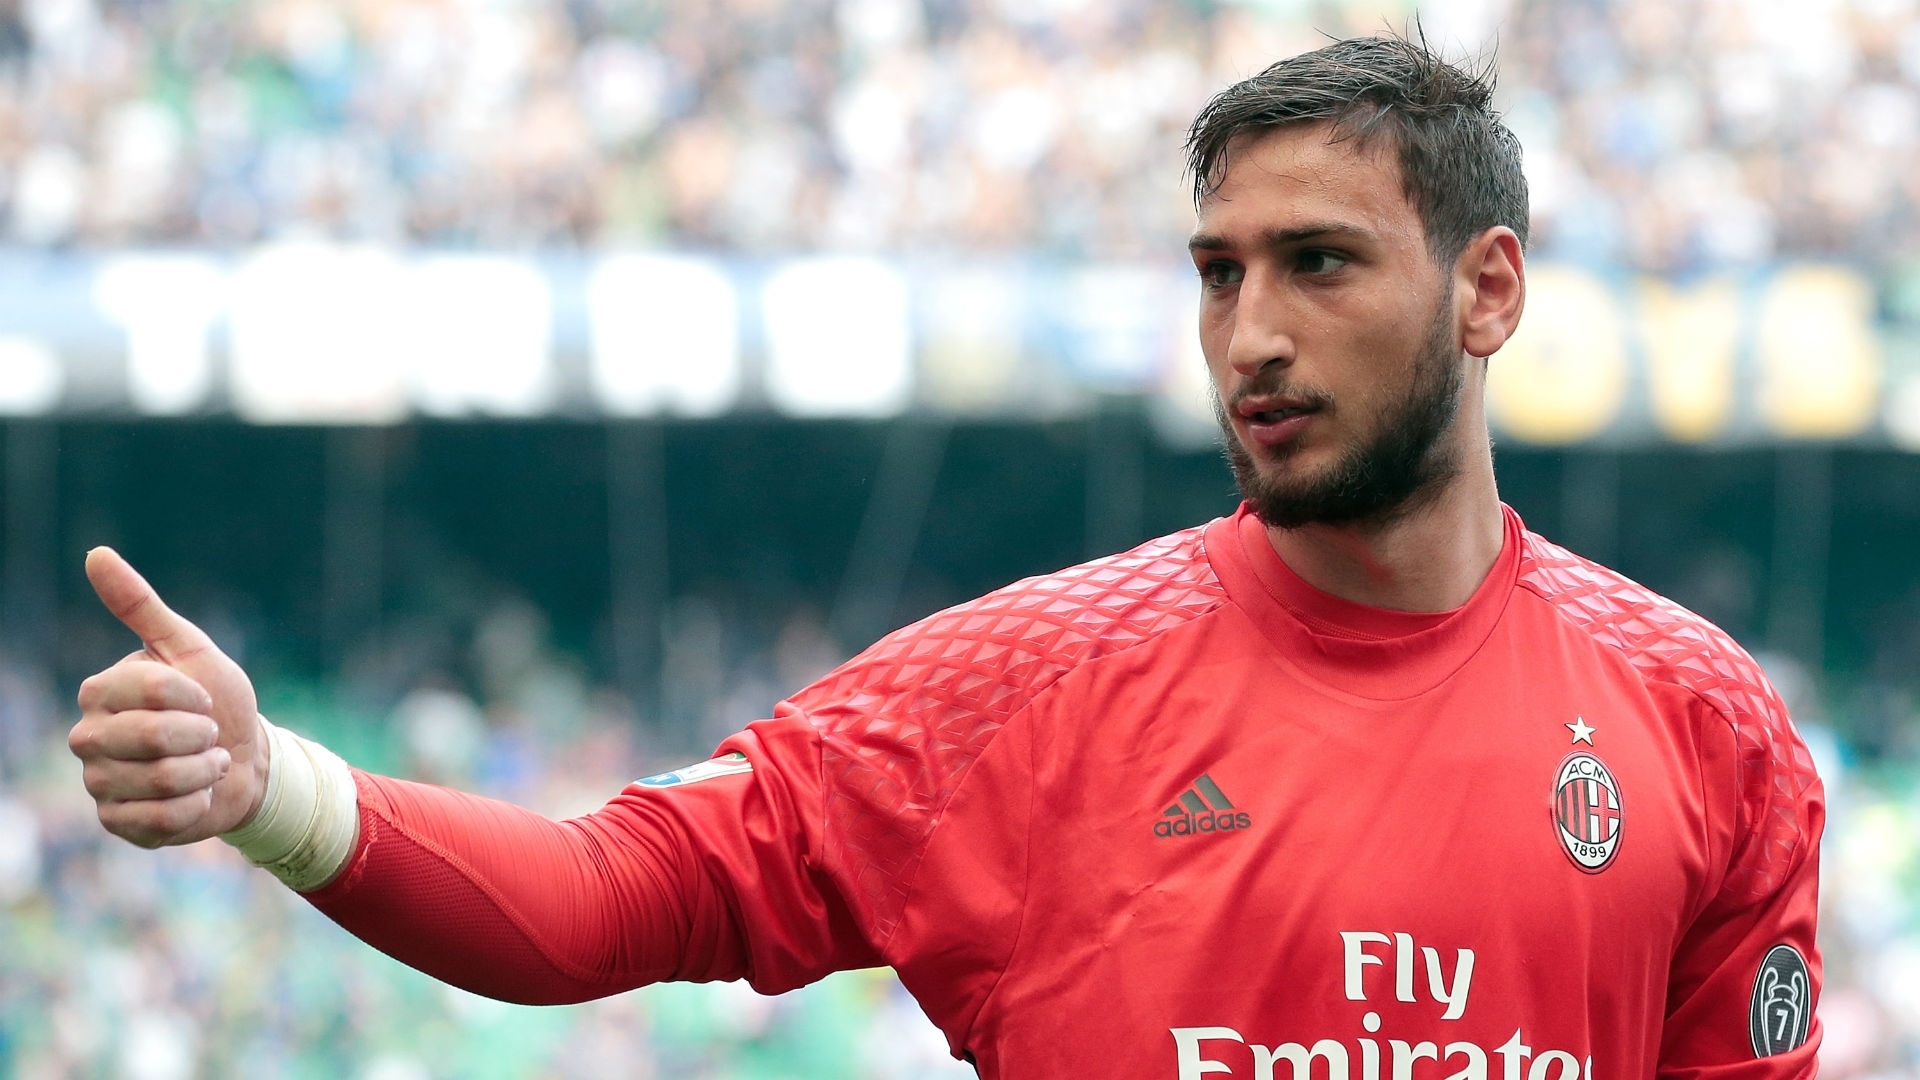 Donnarumma is said to be on the radar of many important teams across Europe